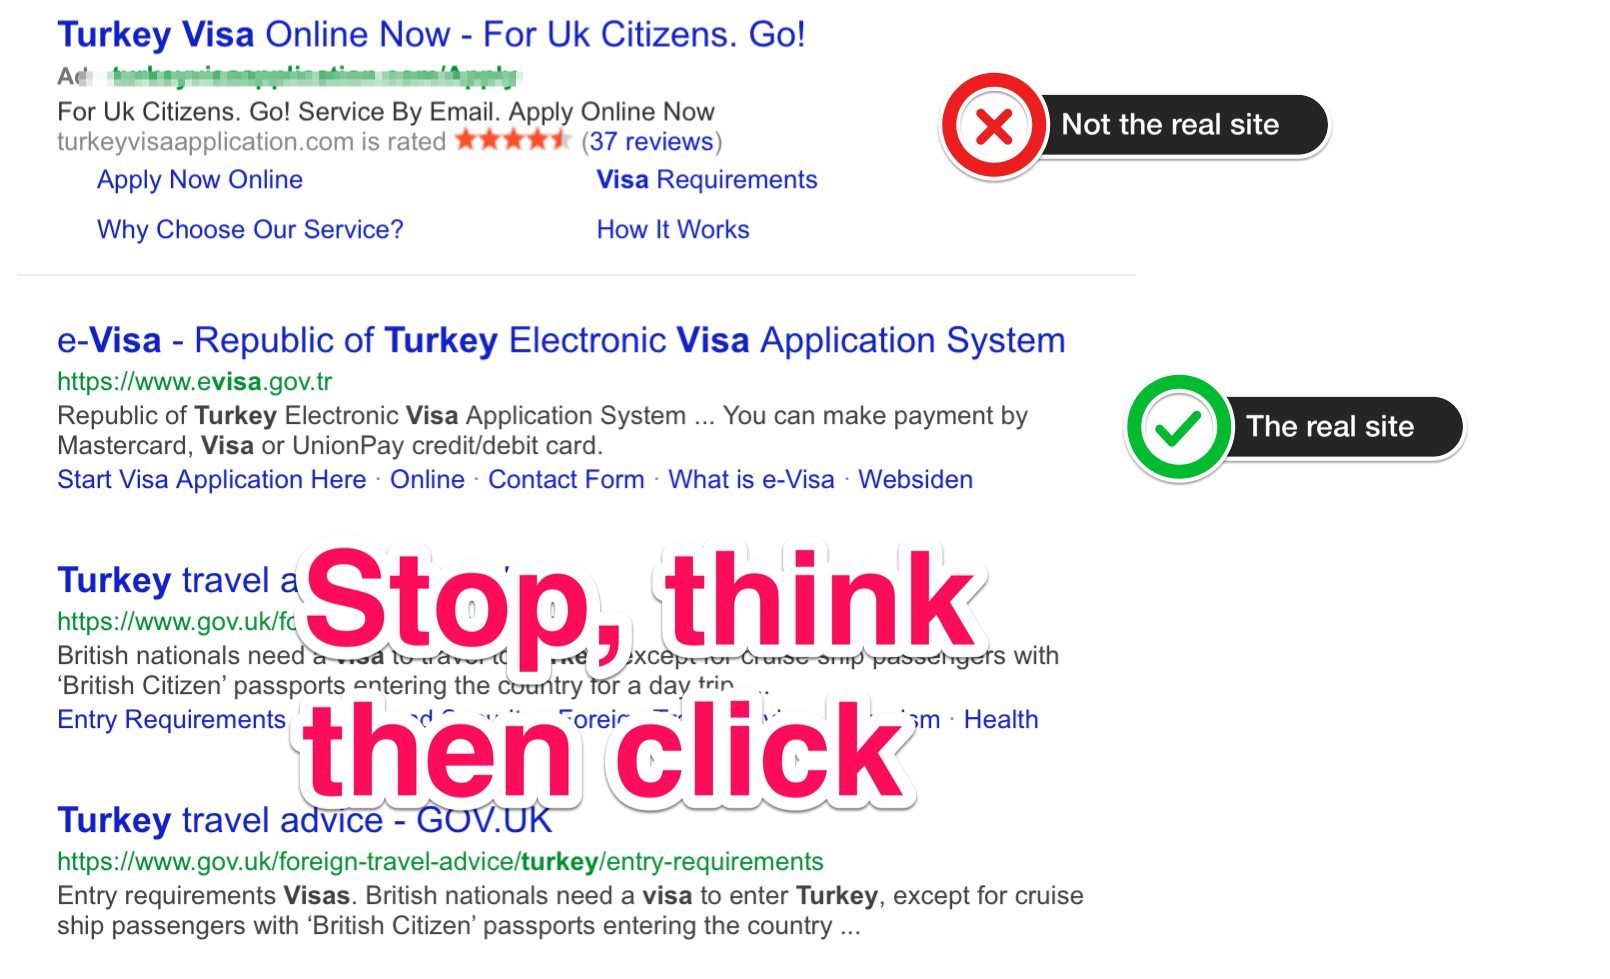 The Turkish Tourist Visa Scam